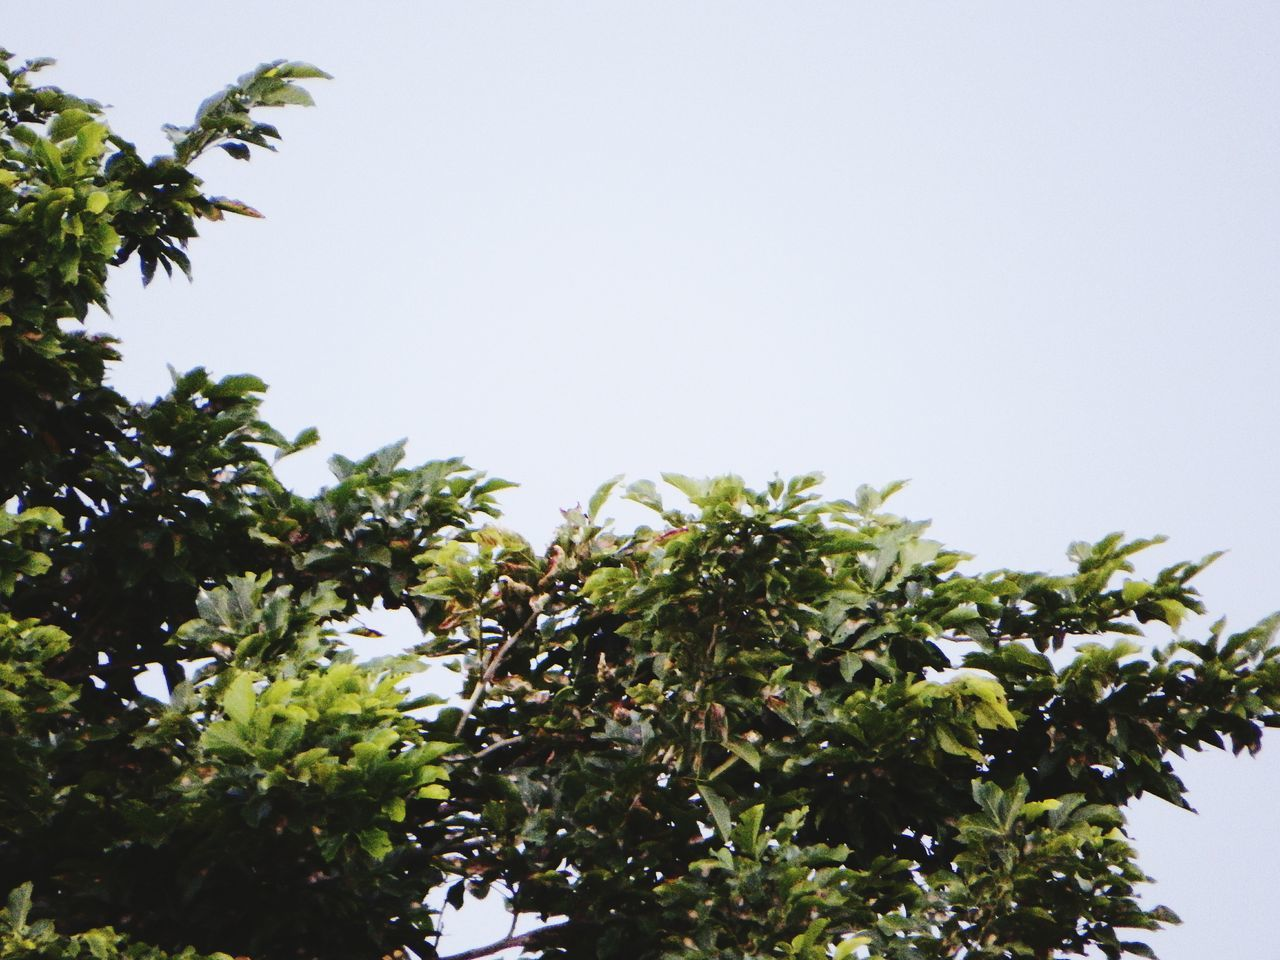 tree, clear sky, growth, low angle view, nature, no people, leaf, day, beauty in nature, branch, plant, outdoors, sky, freshness